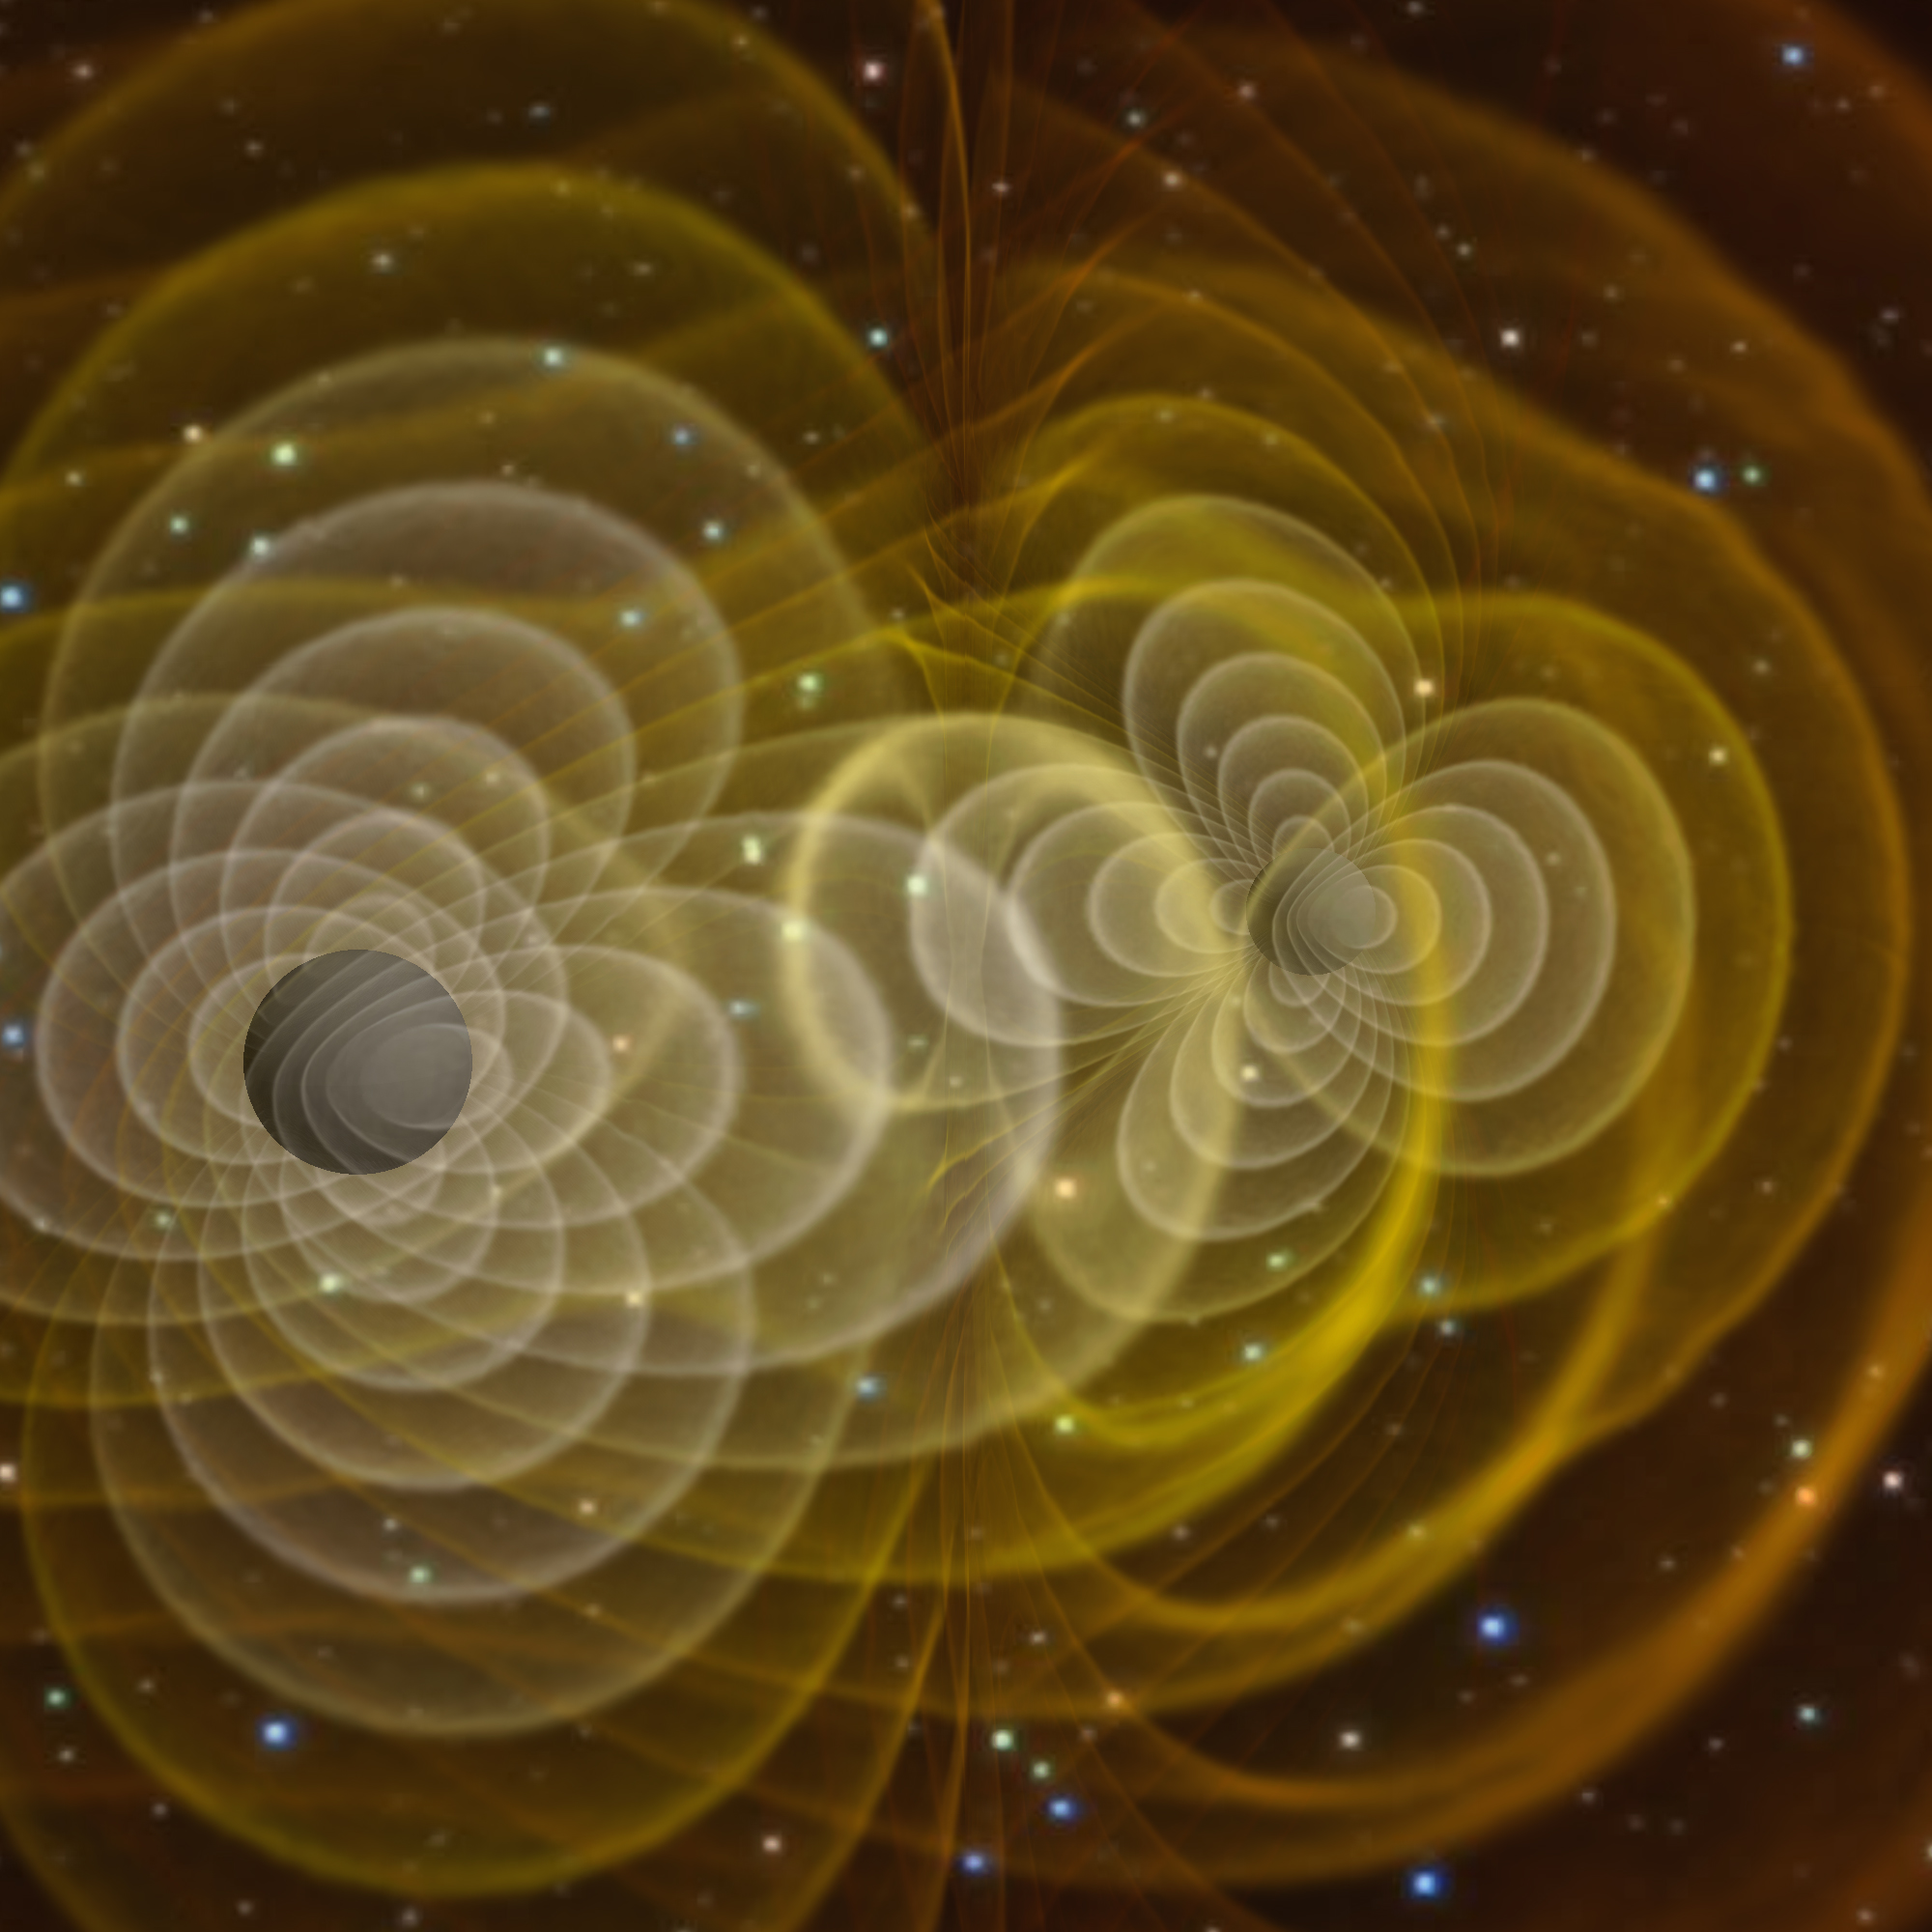 LIGO's vidsualisation of the gravity waves emitted by the orbiting black holes (known as 'inspiraling')